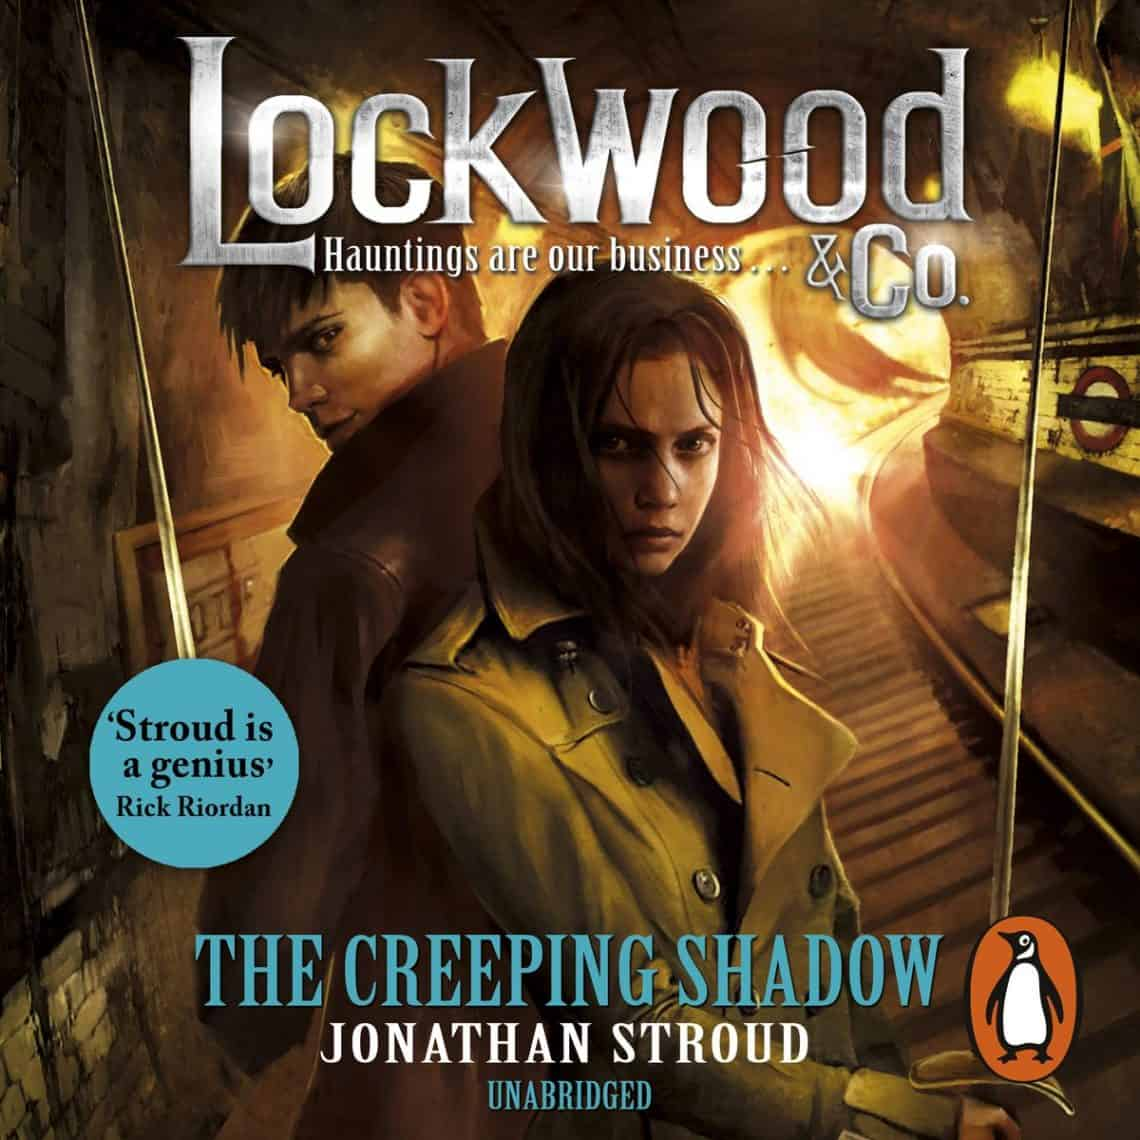 The Creeping Shadow Audiobook Free Download and Listen